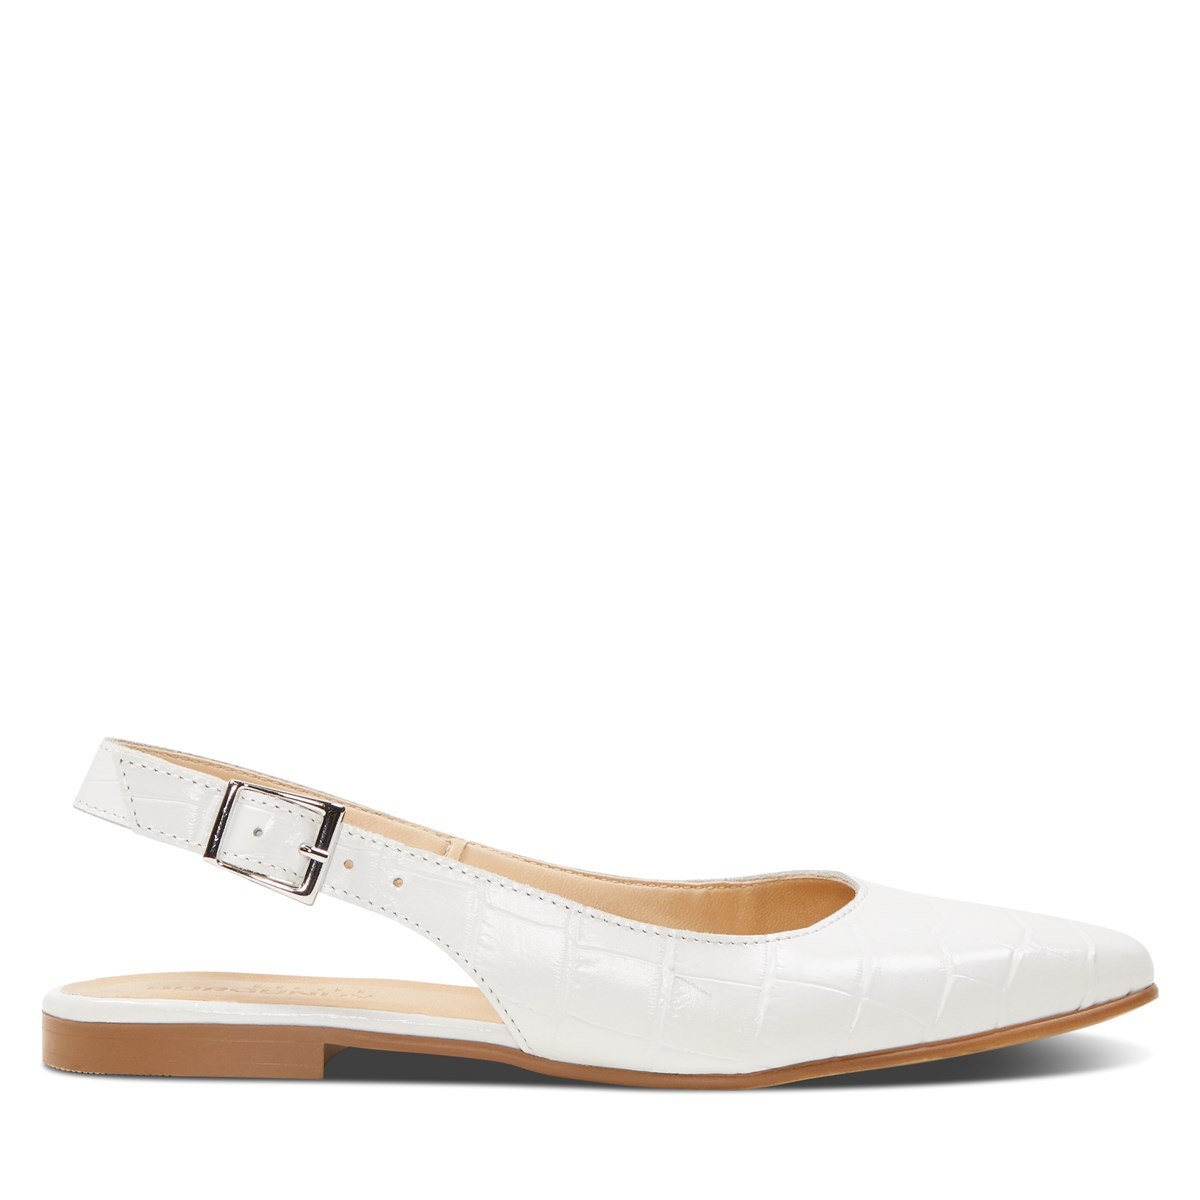 Women's Nadia Flat Sandals in White